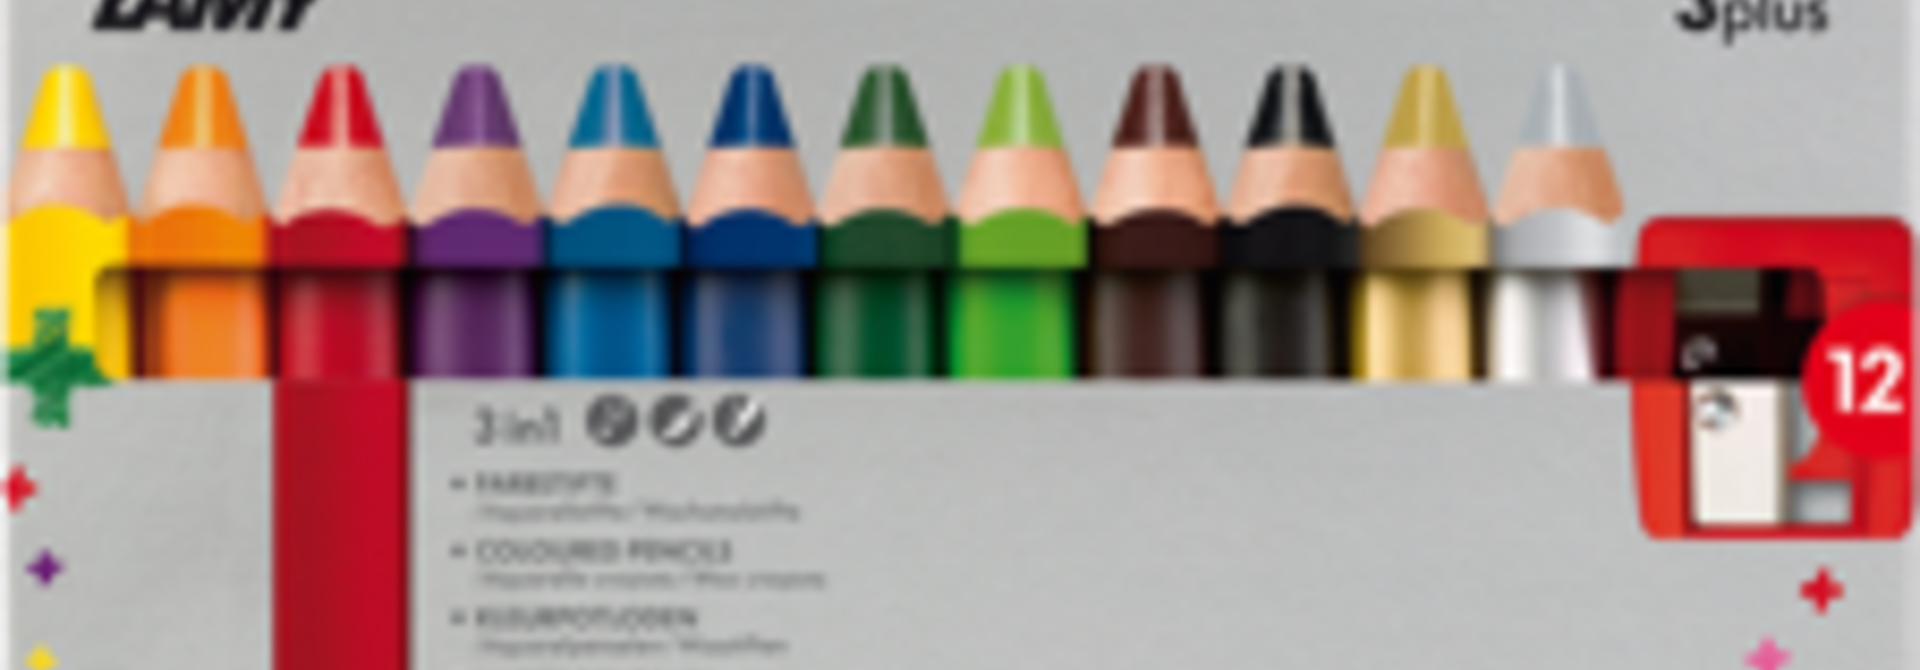 Color pencils 3plus - 12 pcs